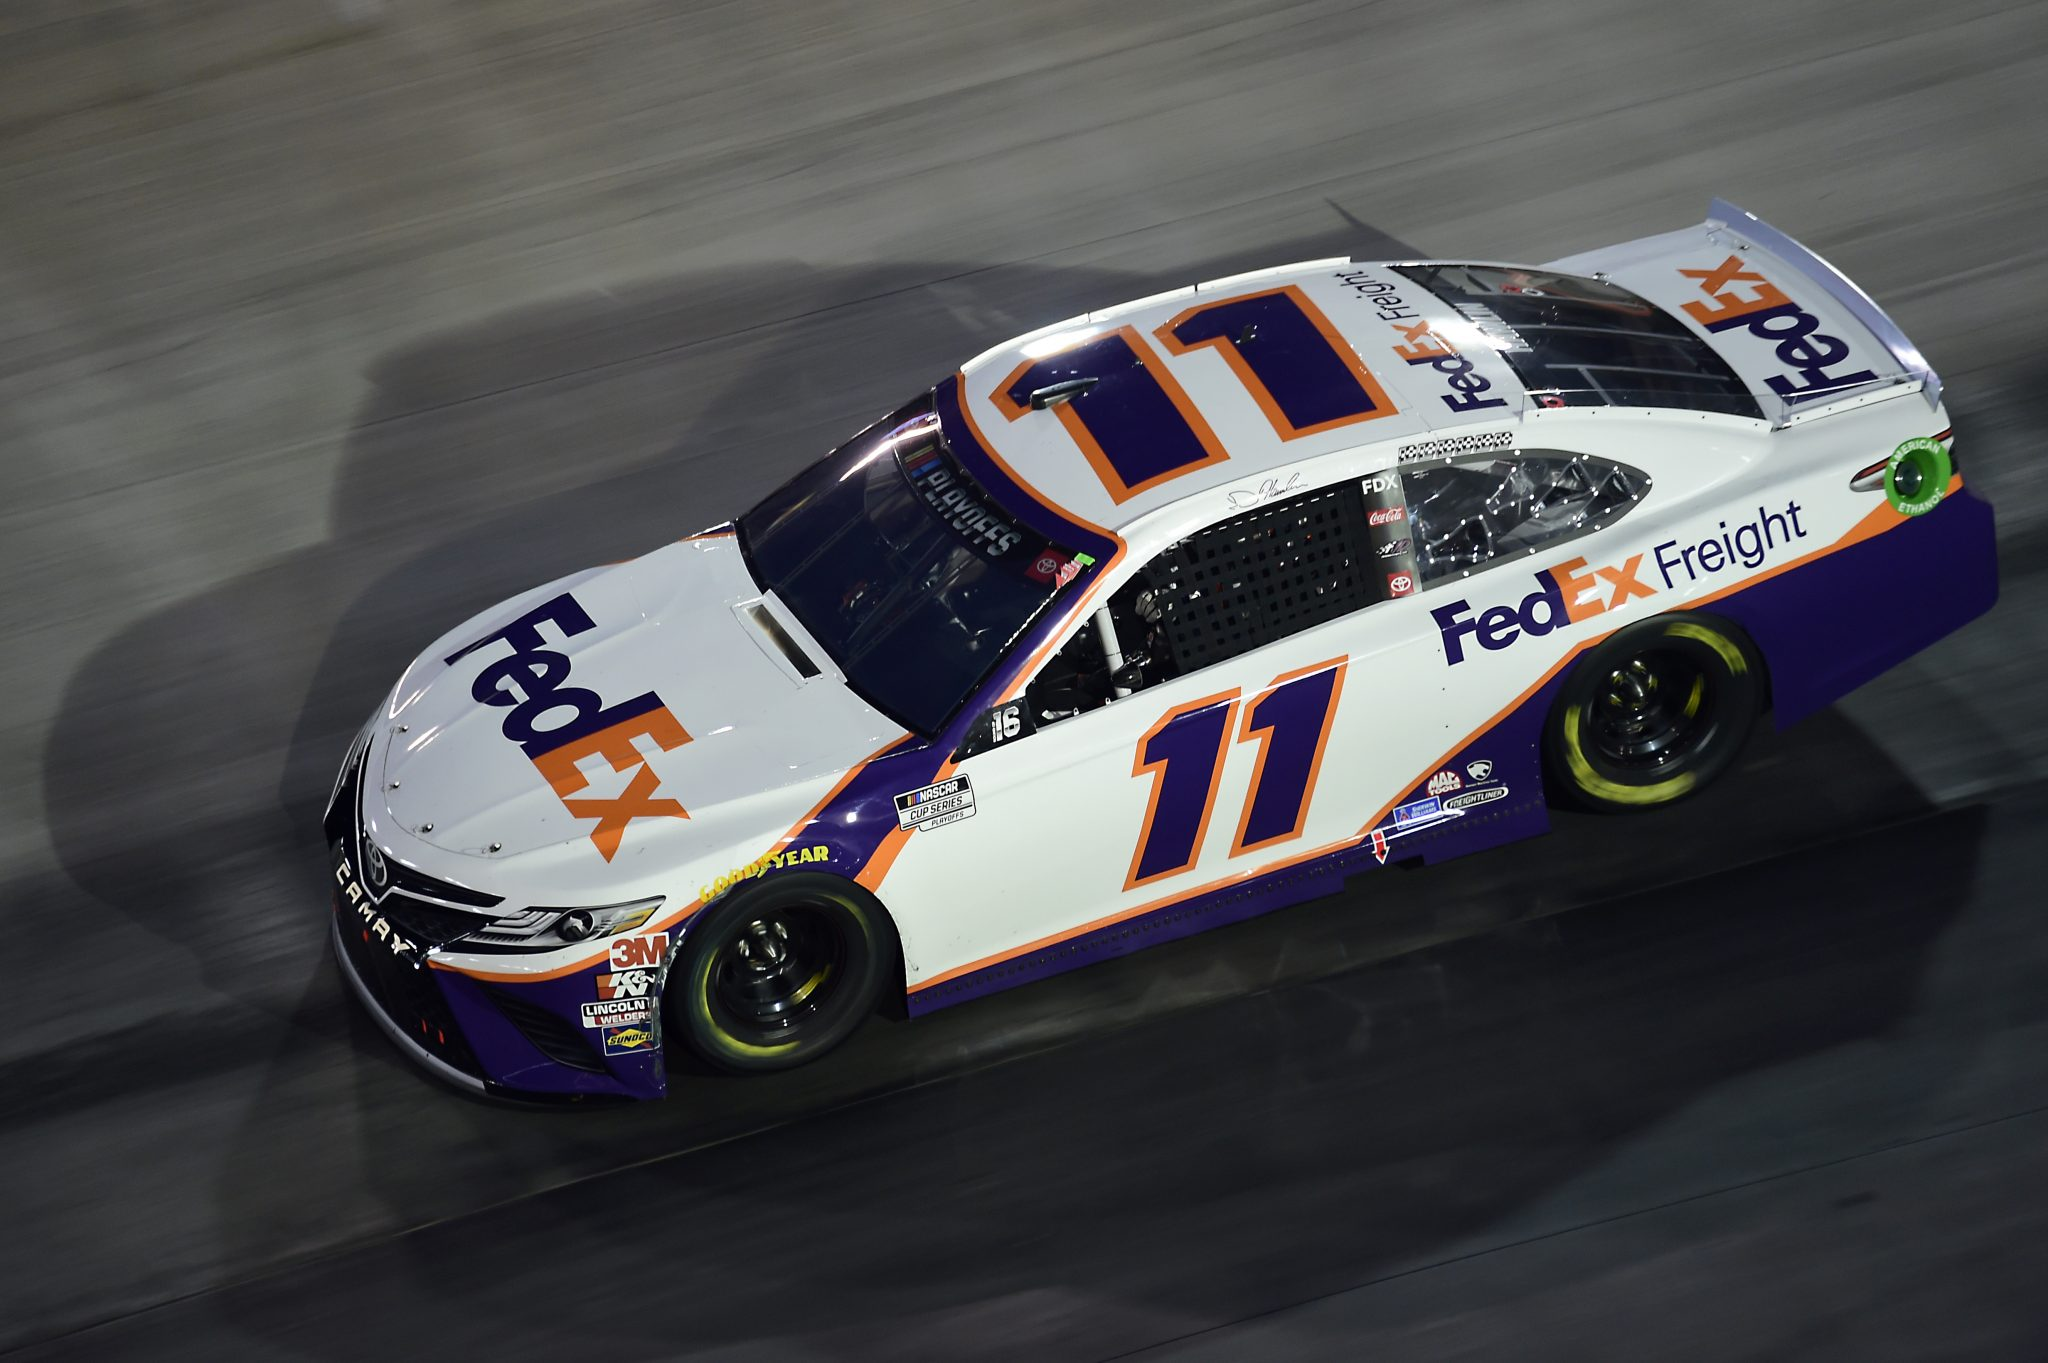 BRISTOL, TENNESSEE - SEPTEMBER 19: Denny Hamlin, driver of the #11 FedEx Freight Toyota, drives during the NASCAR Cup Series Bass Pro Shops Night Race at Bristol Motor Speedway on September 19, 2020 in Bristol, Tennessee. (Photo by Jared C. Tilton/Getty Images) | Getty Images